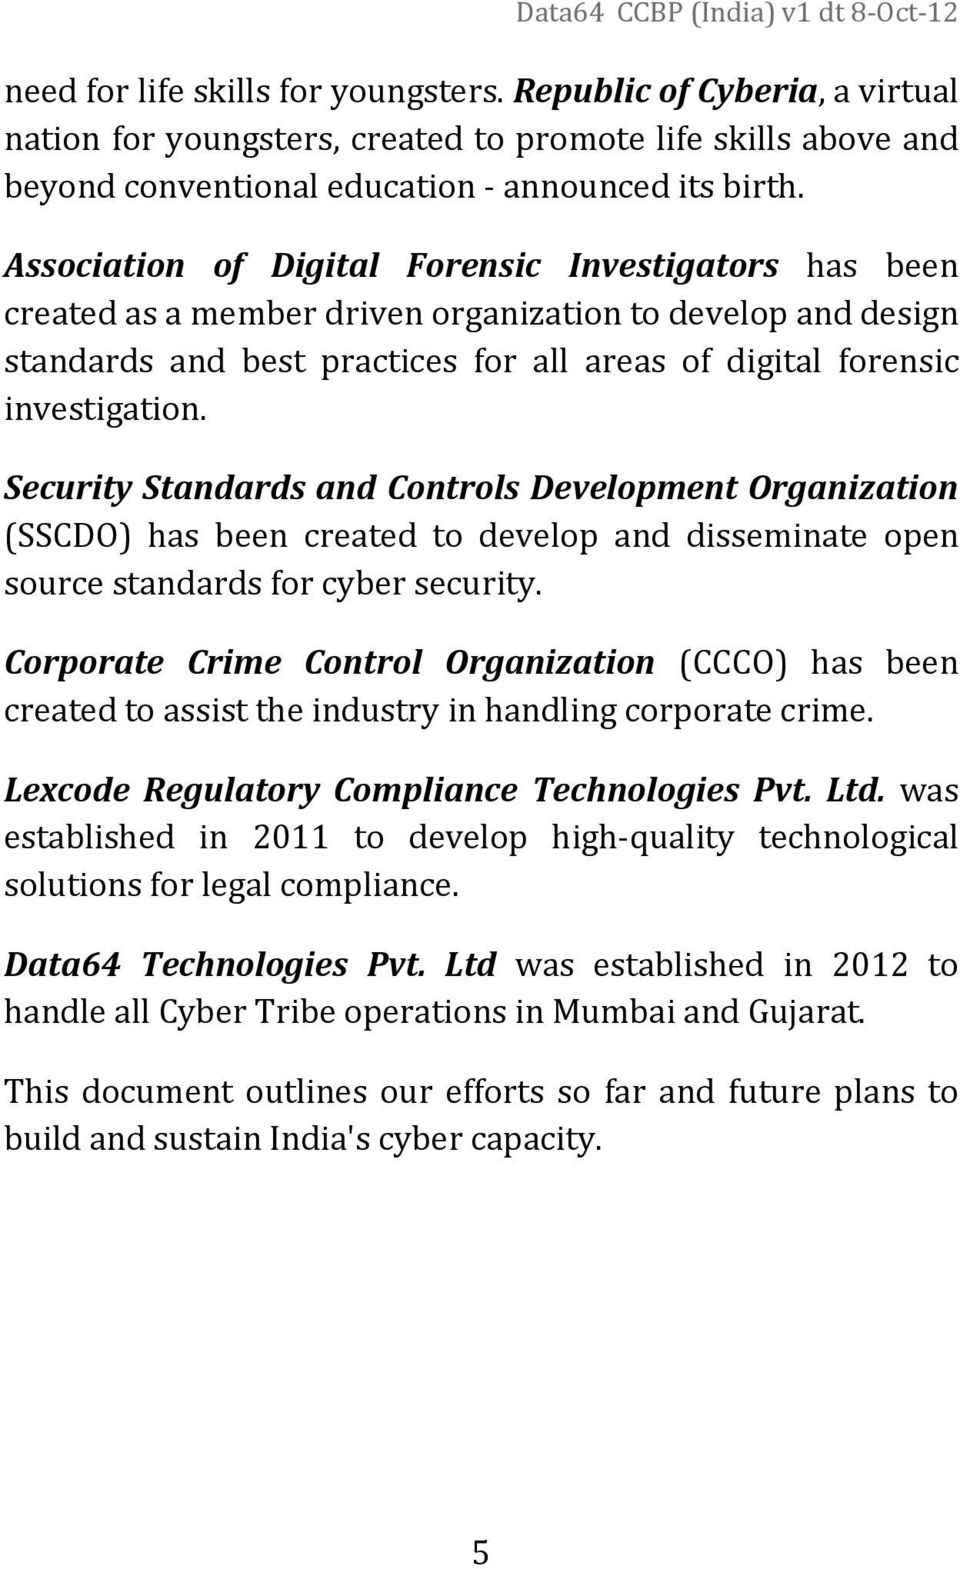 Security Standards and Controls Development Organization (SSCDO) has been created to develop and disseminate open source standards for cyber security.